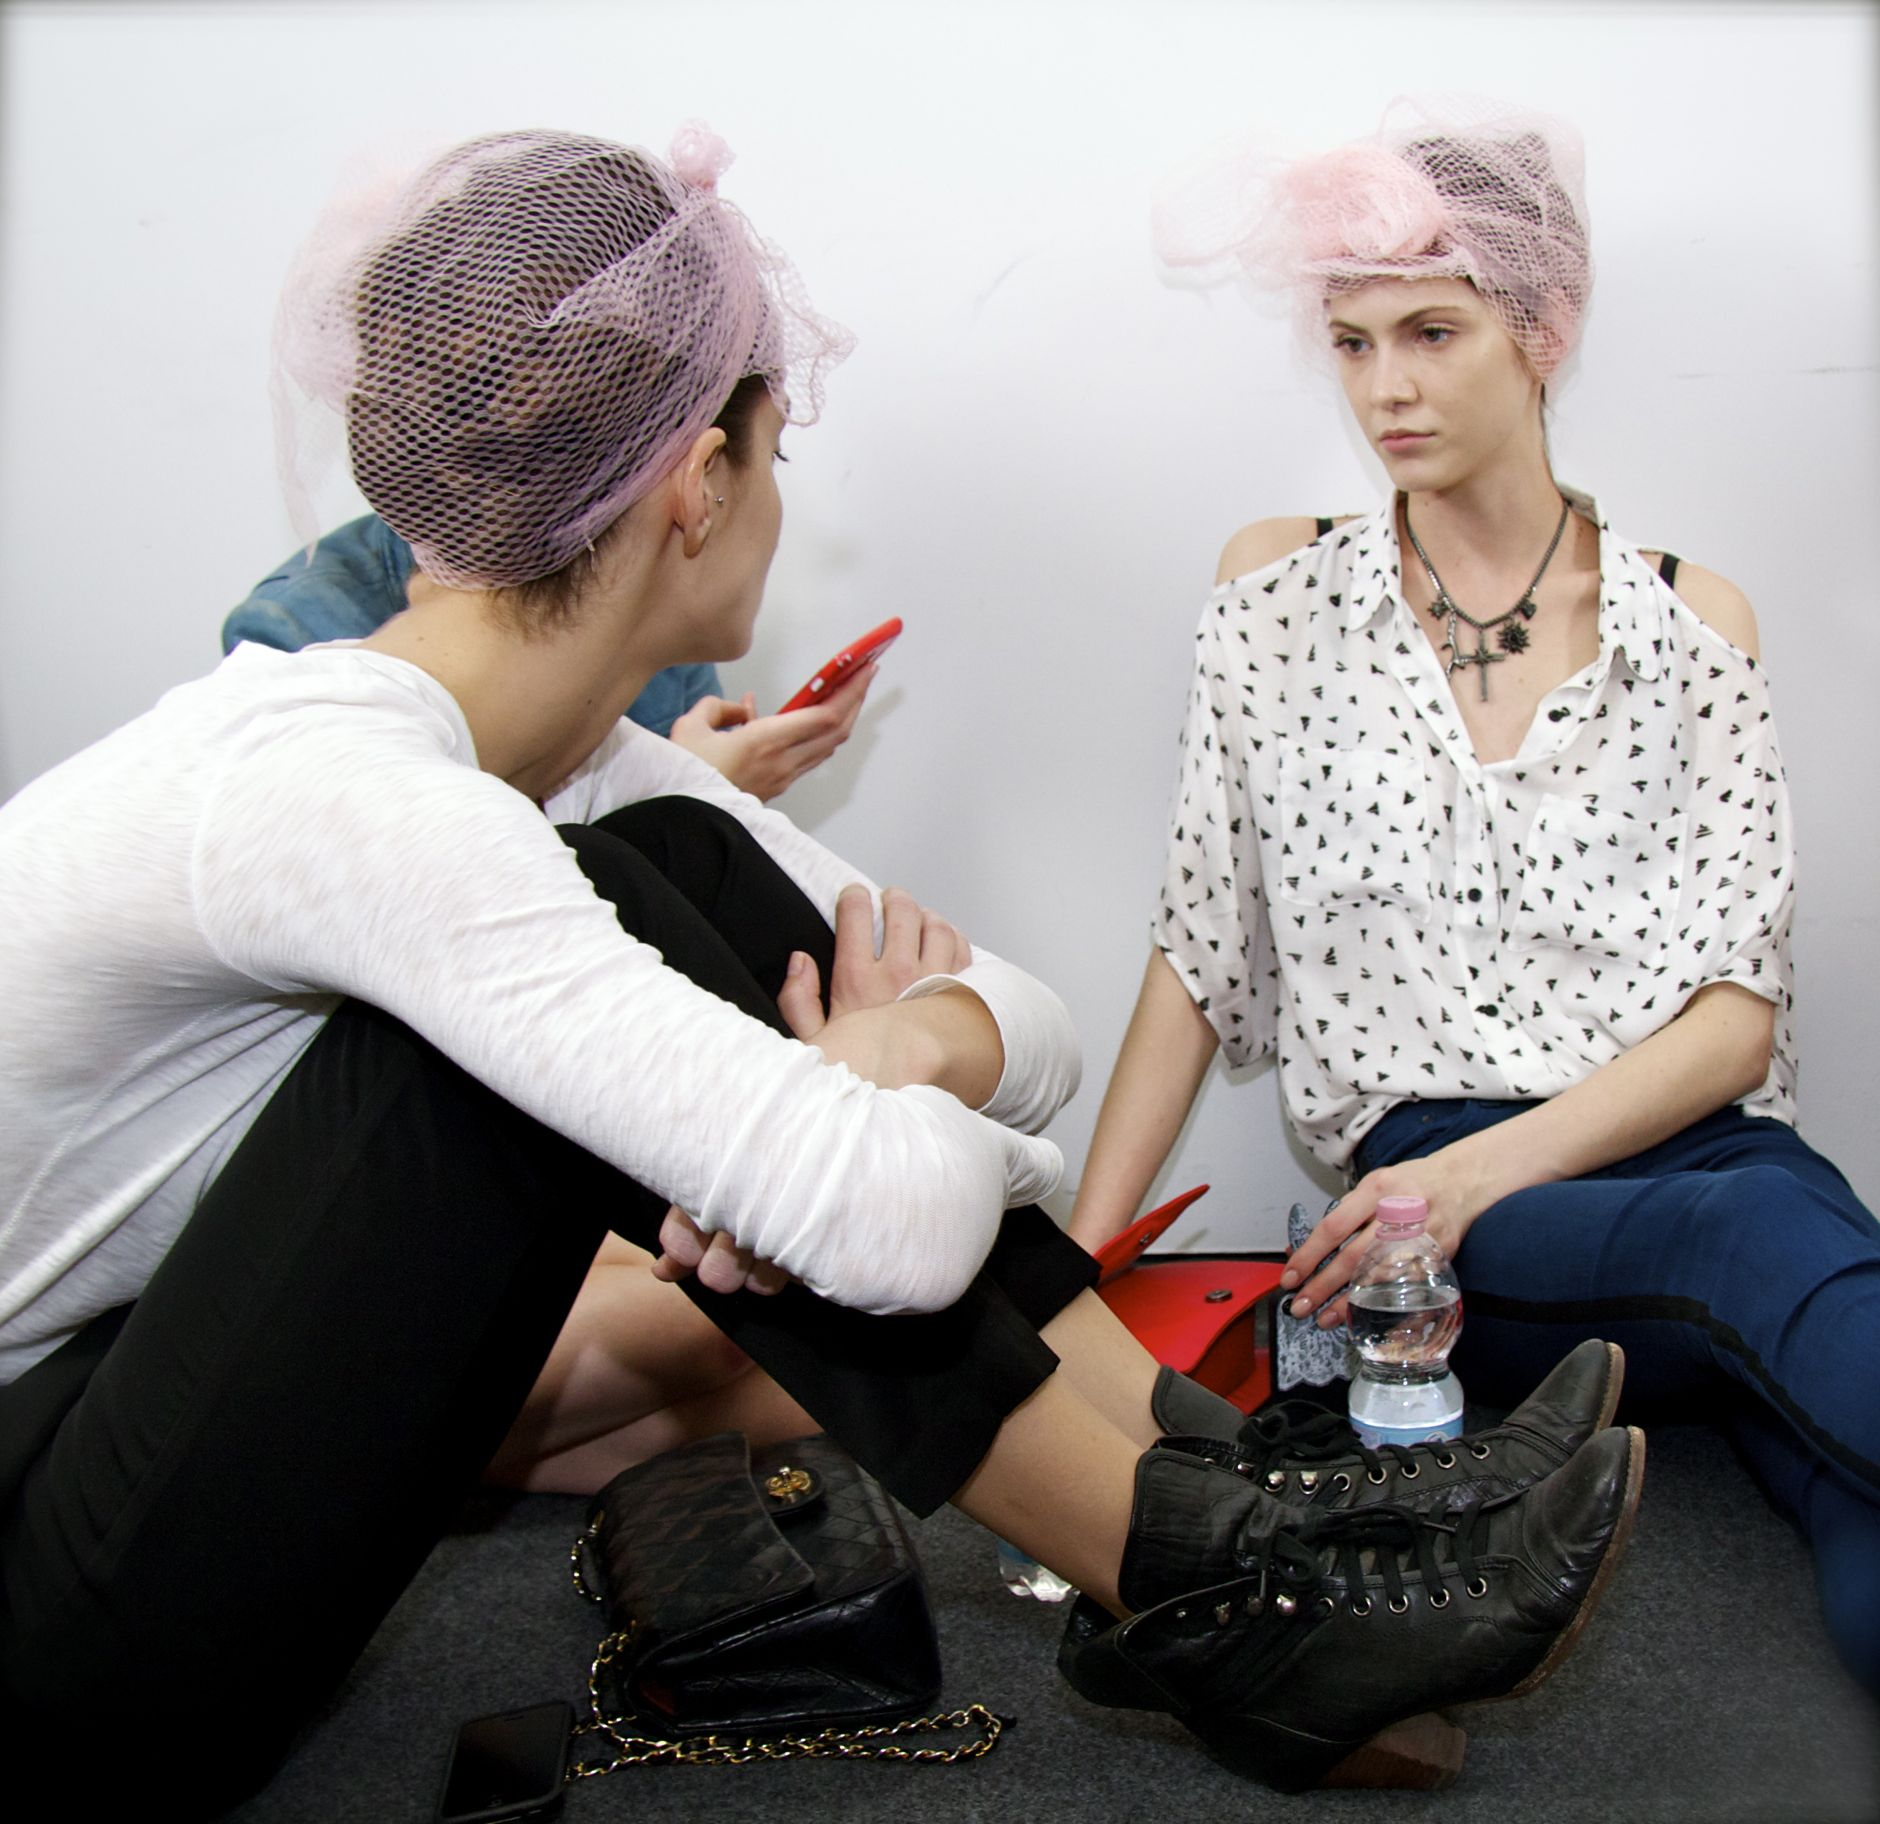 Backstage Jo No Fui Spring Summer 2013